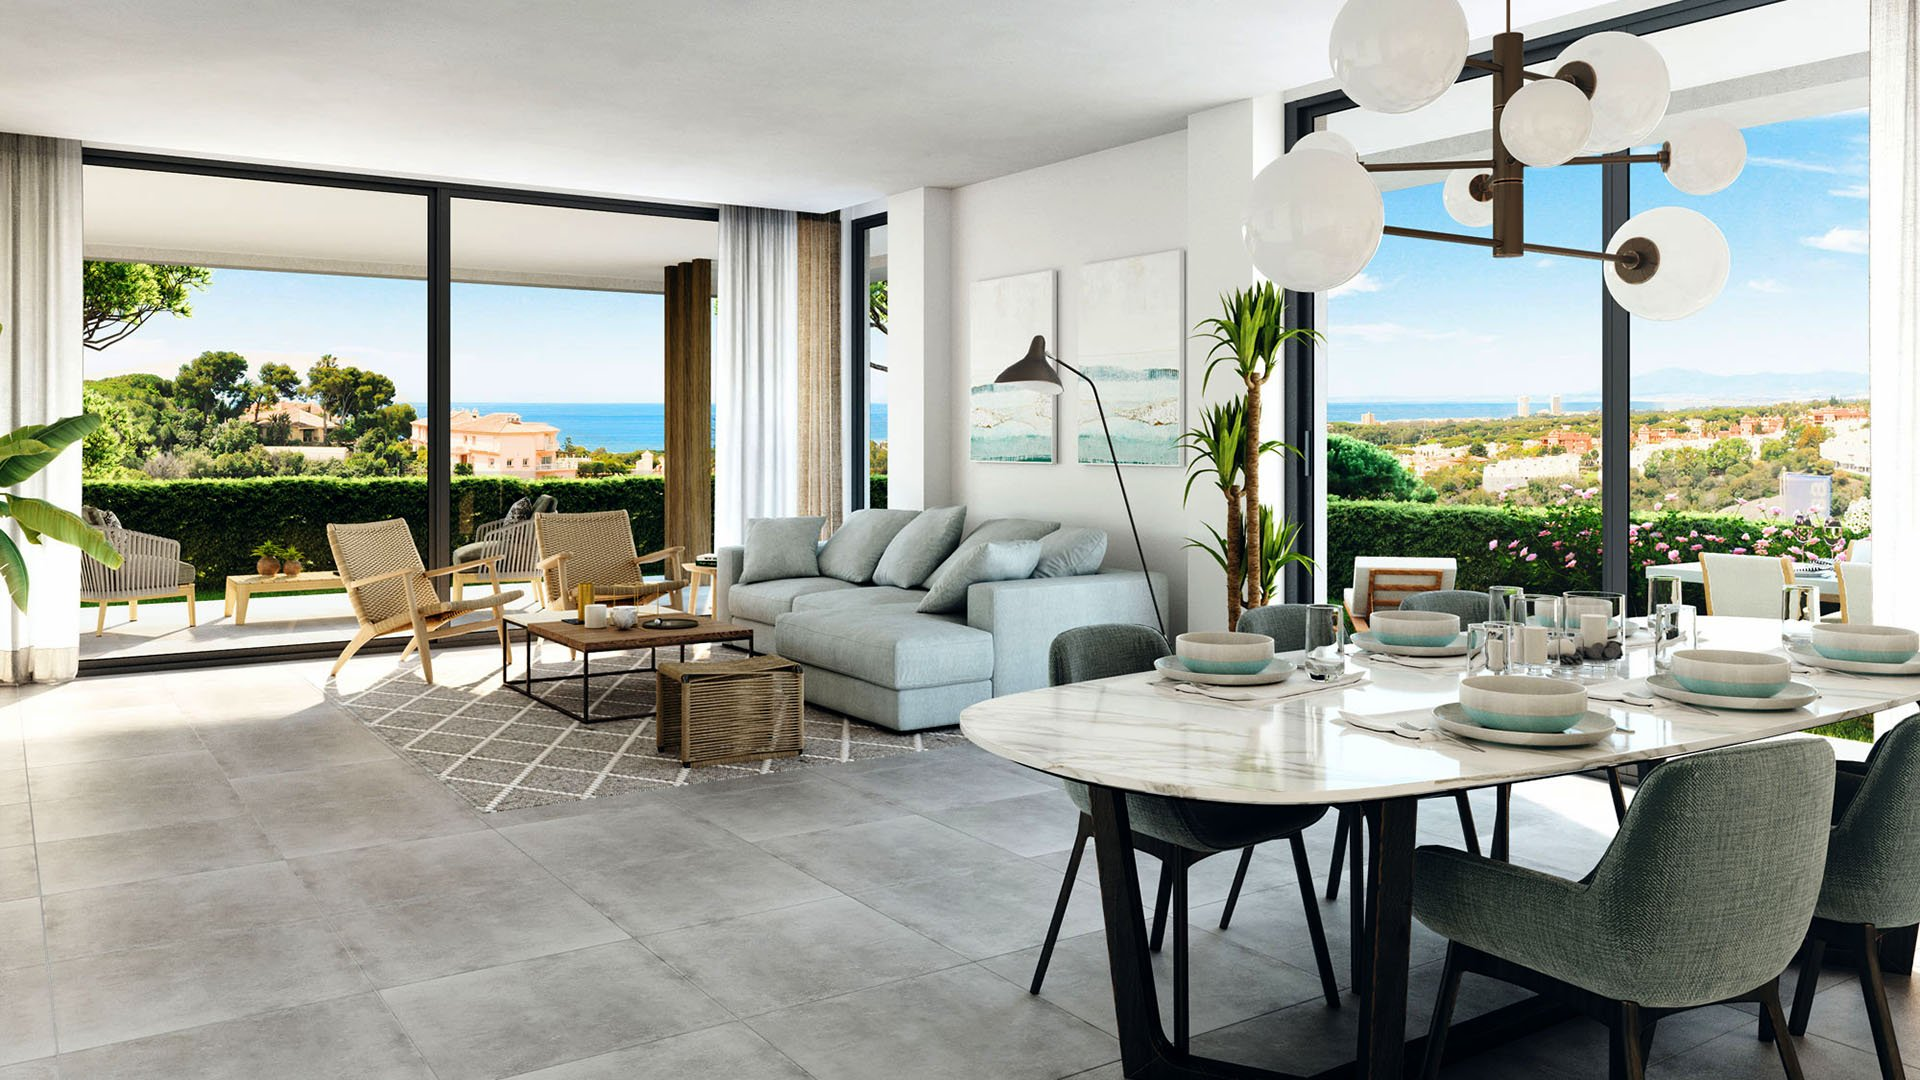 Venere Residences: A gorgeous boutique project in Cabopino